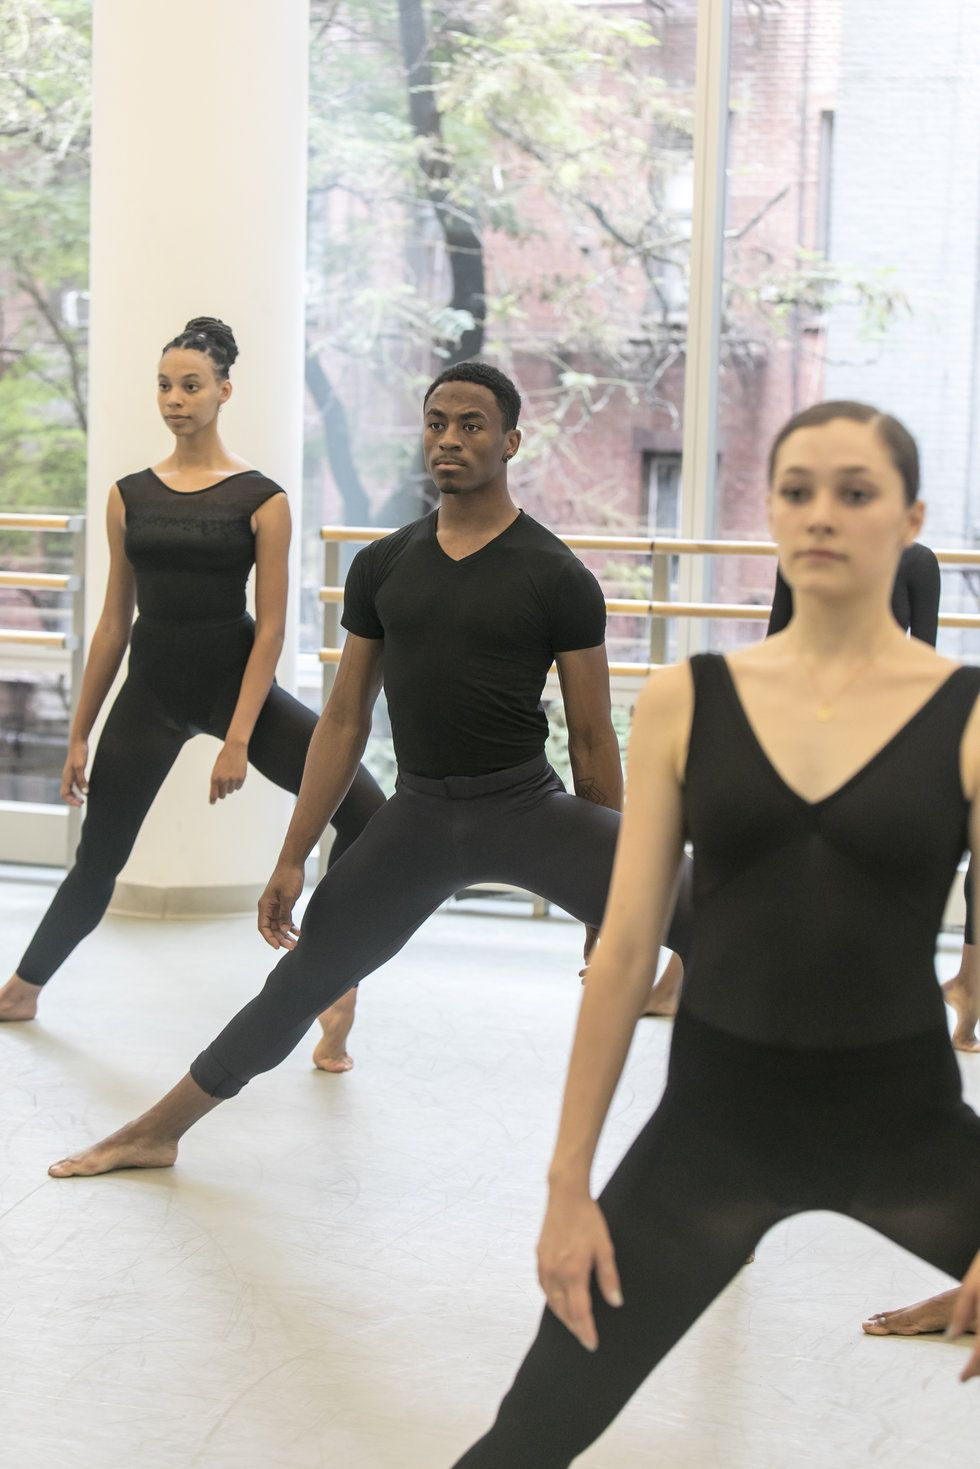 Three dance students in black uniforms stand in a wide second position with one leg bent in plie, arms relaxed at their sides.